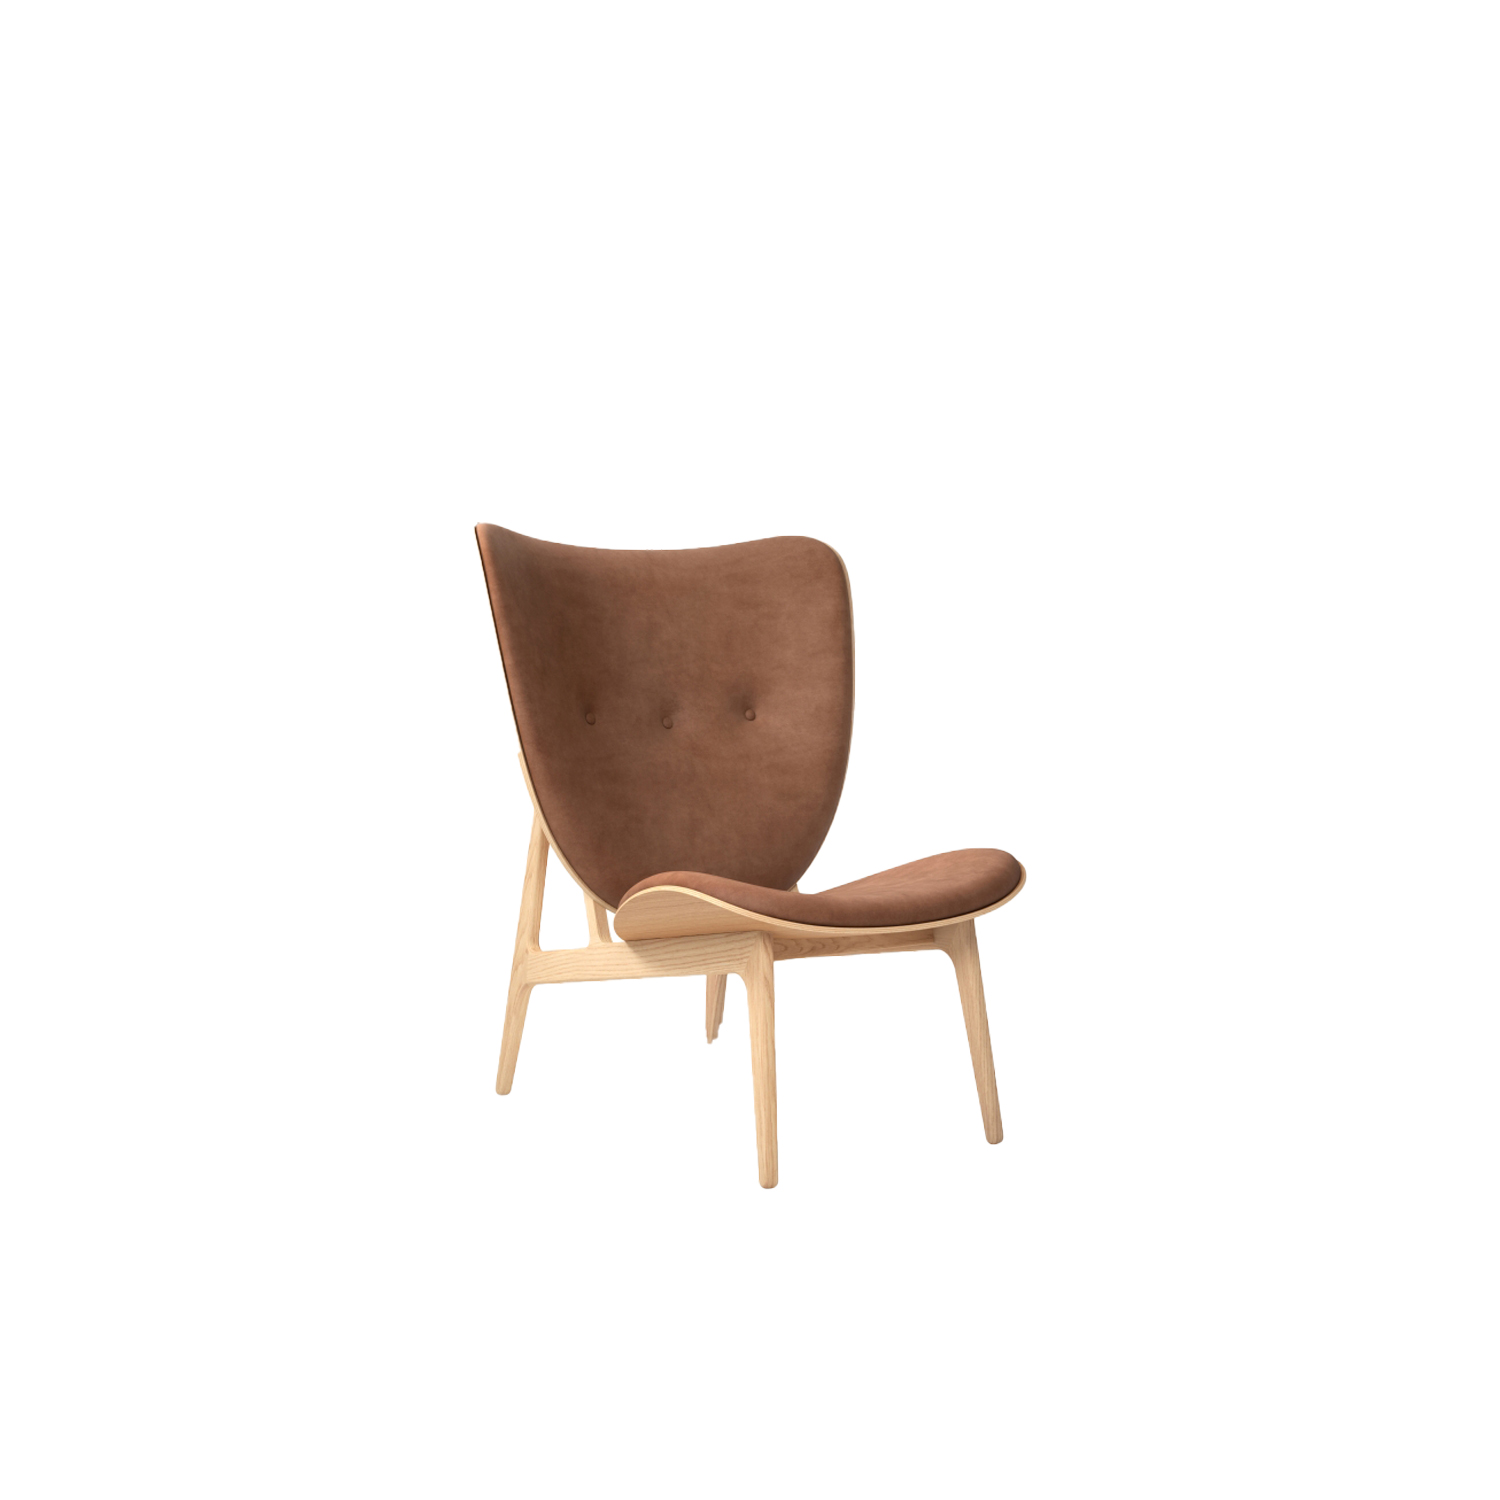 """Elephant Lounge Chair  - The Elephant Chair, designed by Kristian Sofus Hansen and Tommy Hyldahl, is a modern interpretation of Scandinavian minimalism combined with Japanese aesthetics. The design is inspired by Danish upholstered chairs of the 1950's, while drawing visible characteristics from the already iconic Mammoth Chair. The result is a light and elegant lounge chair where the Elephant ear shaped back gently curves around the body providing superior comfort.  The Elephant chair is hand-crafted with a solid oak wood frame. The chair comes in four frame variations; Natural, Dark Stained, Black and Smoked, and can be upholstered with leather, wool and sheepskin.   The seat and back are made from the highest quality compression molded oak veneer shells. The two shells are pressed in the same press mold, and surround the body in a light soft curve. The legs are designed as one single profile without any visible joints. This enriches the experience of the material strength and exchange between the light and heavy dimensions; """"elegant and simple but sturdy without being clumsy"""". 